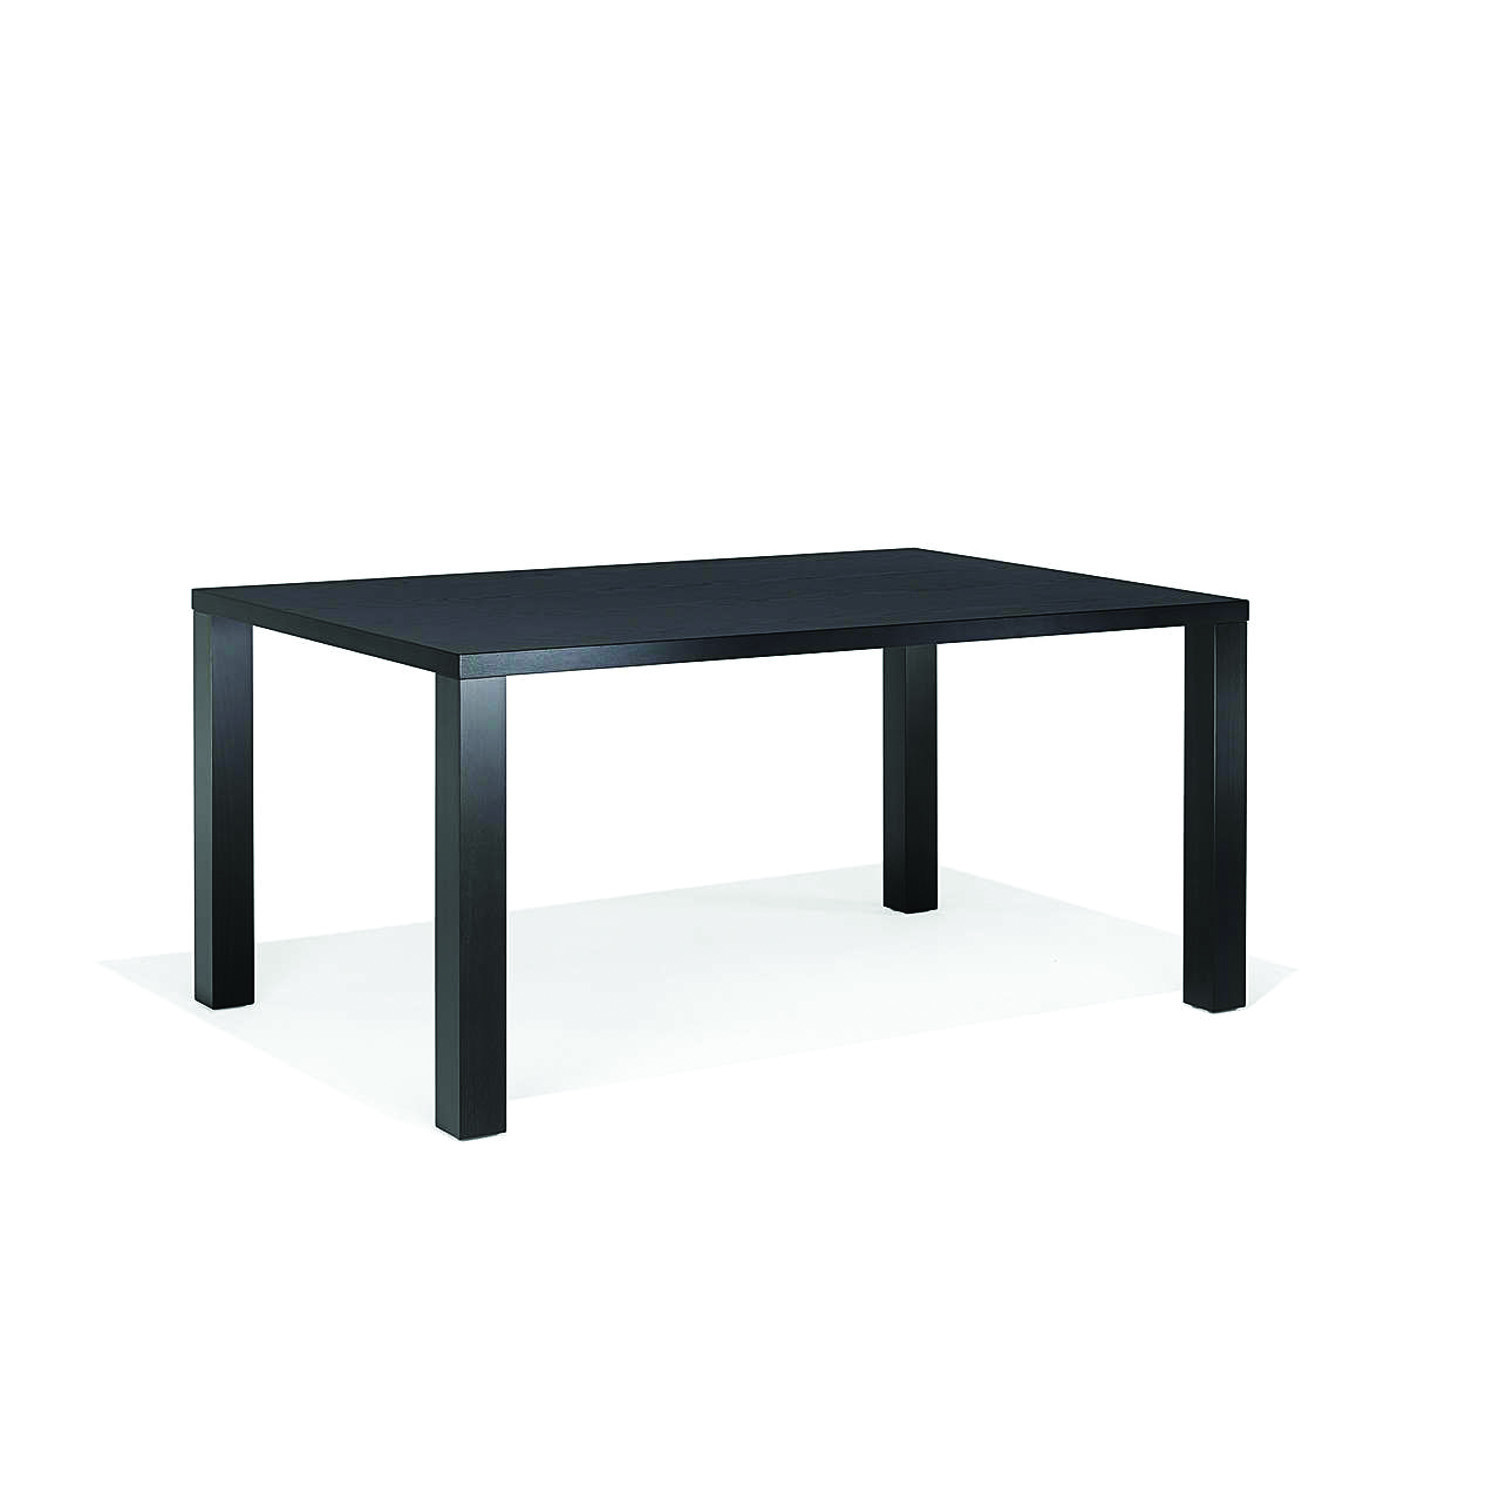 8900 Table Series